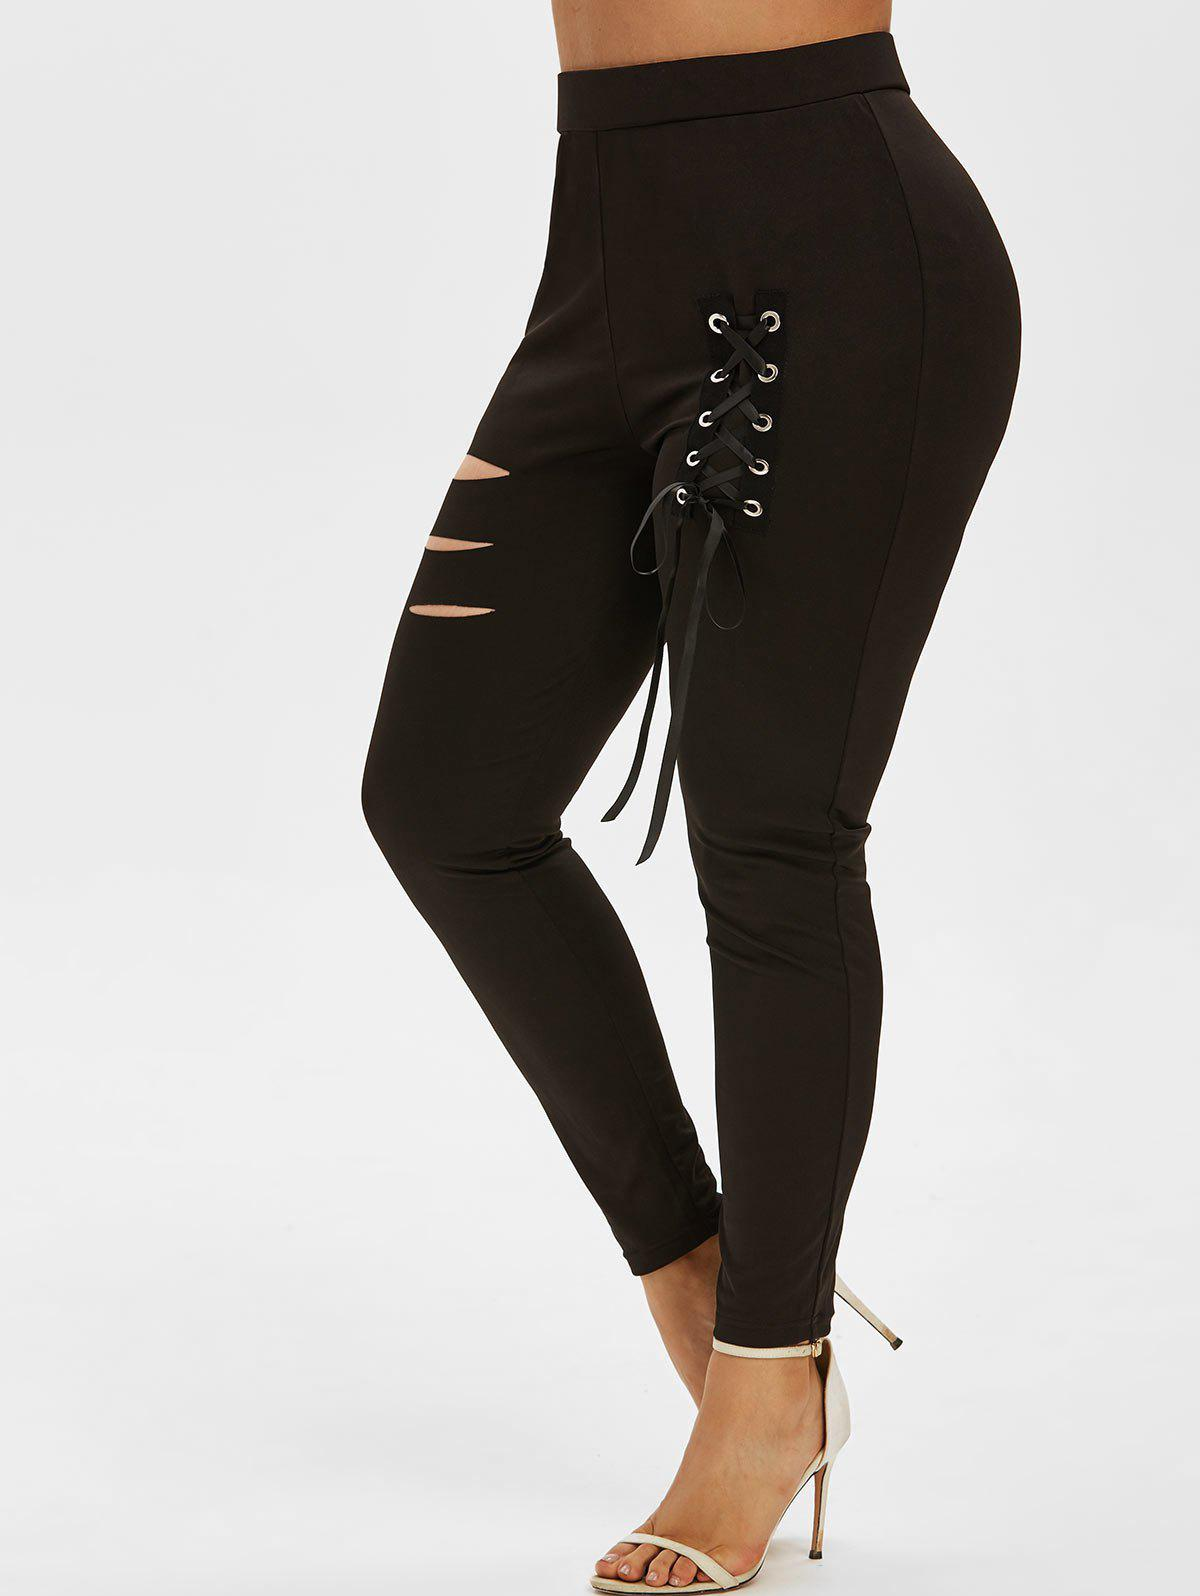 Plus Size Lace Up Ripped Pants - BLACK 5X